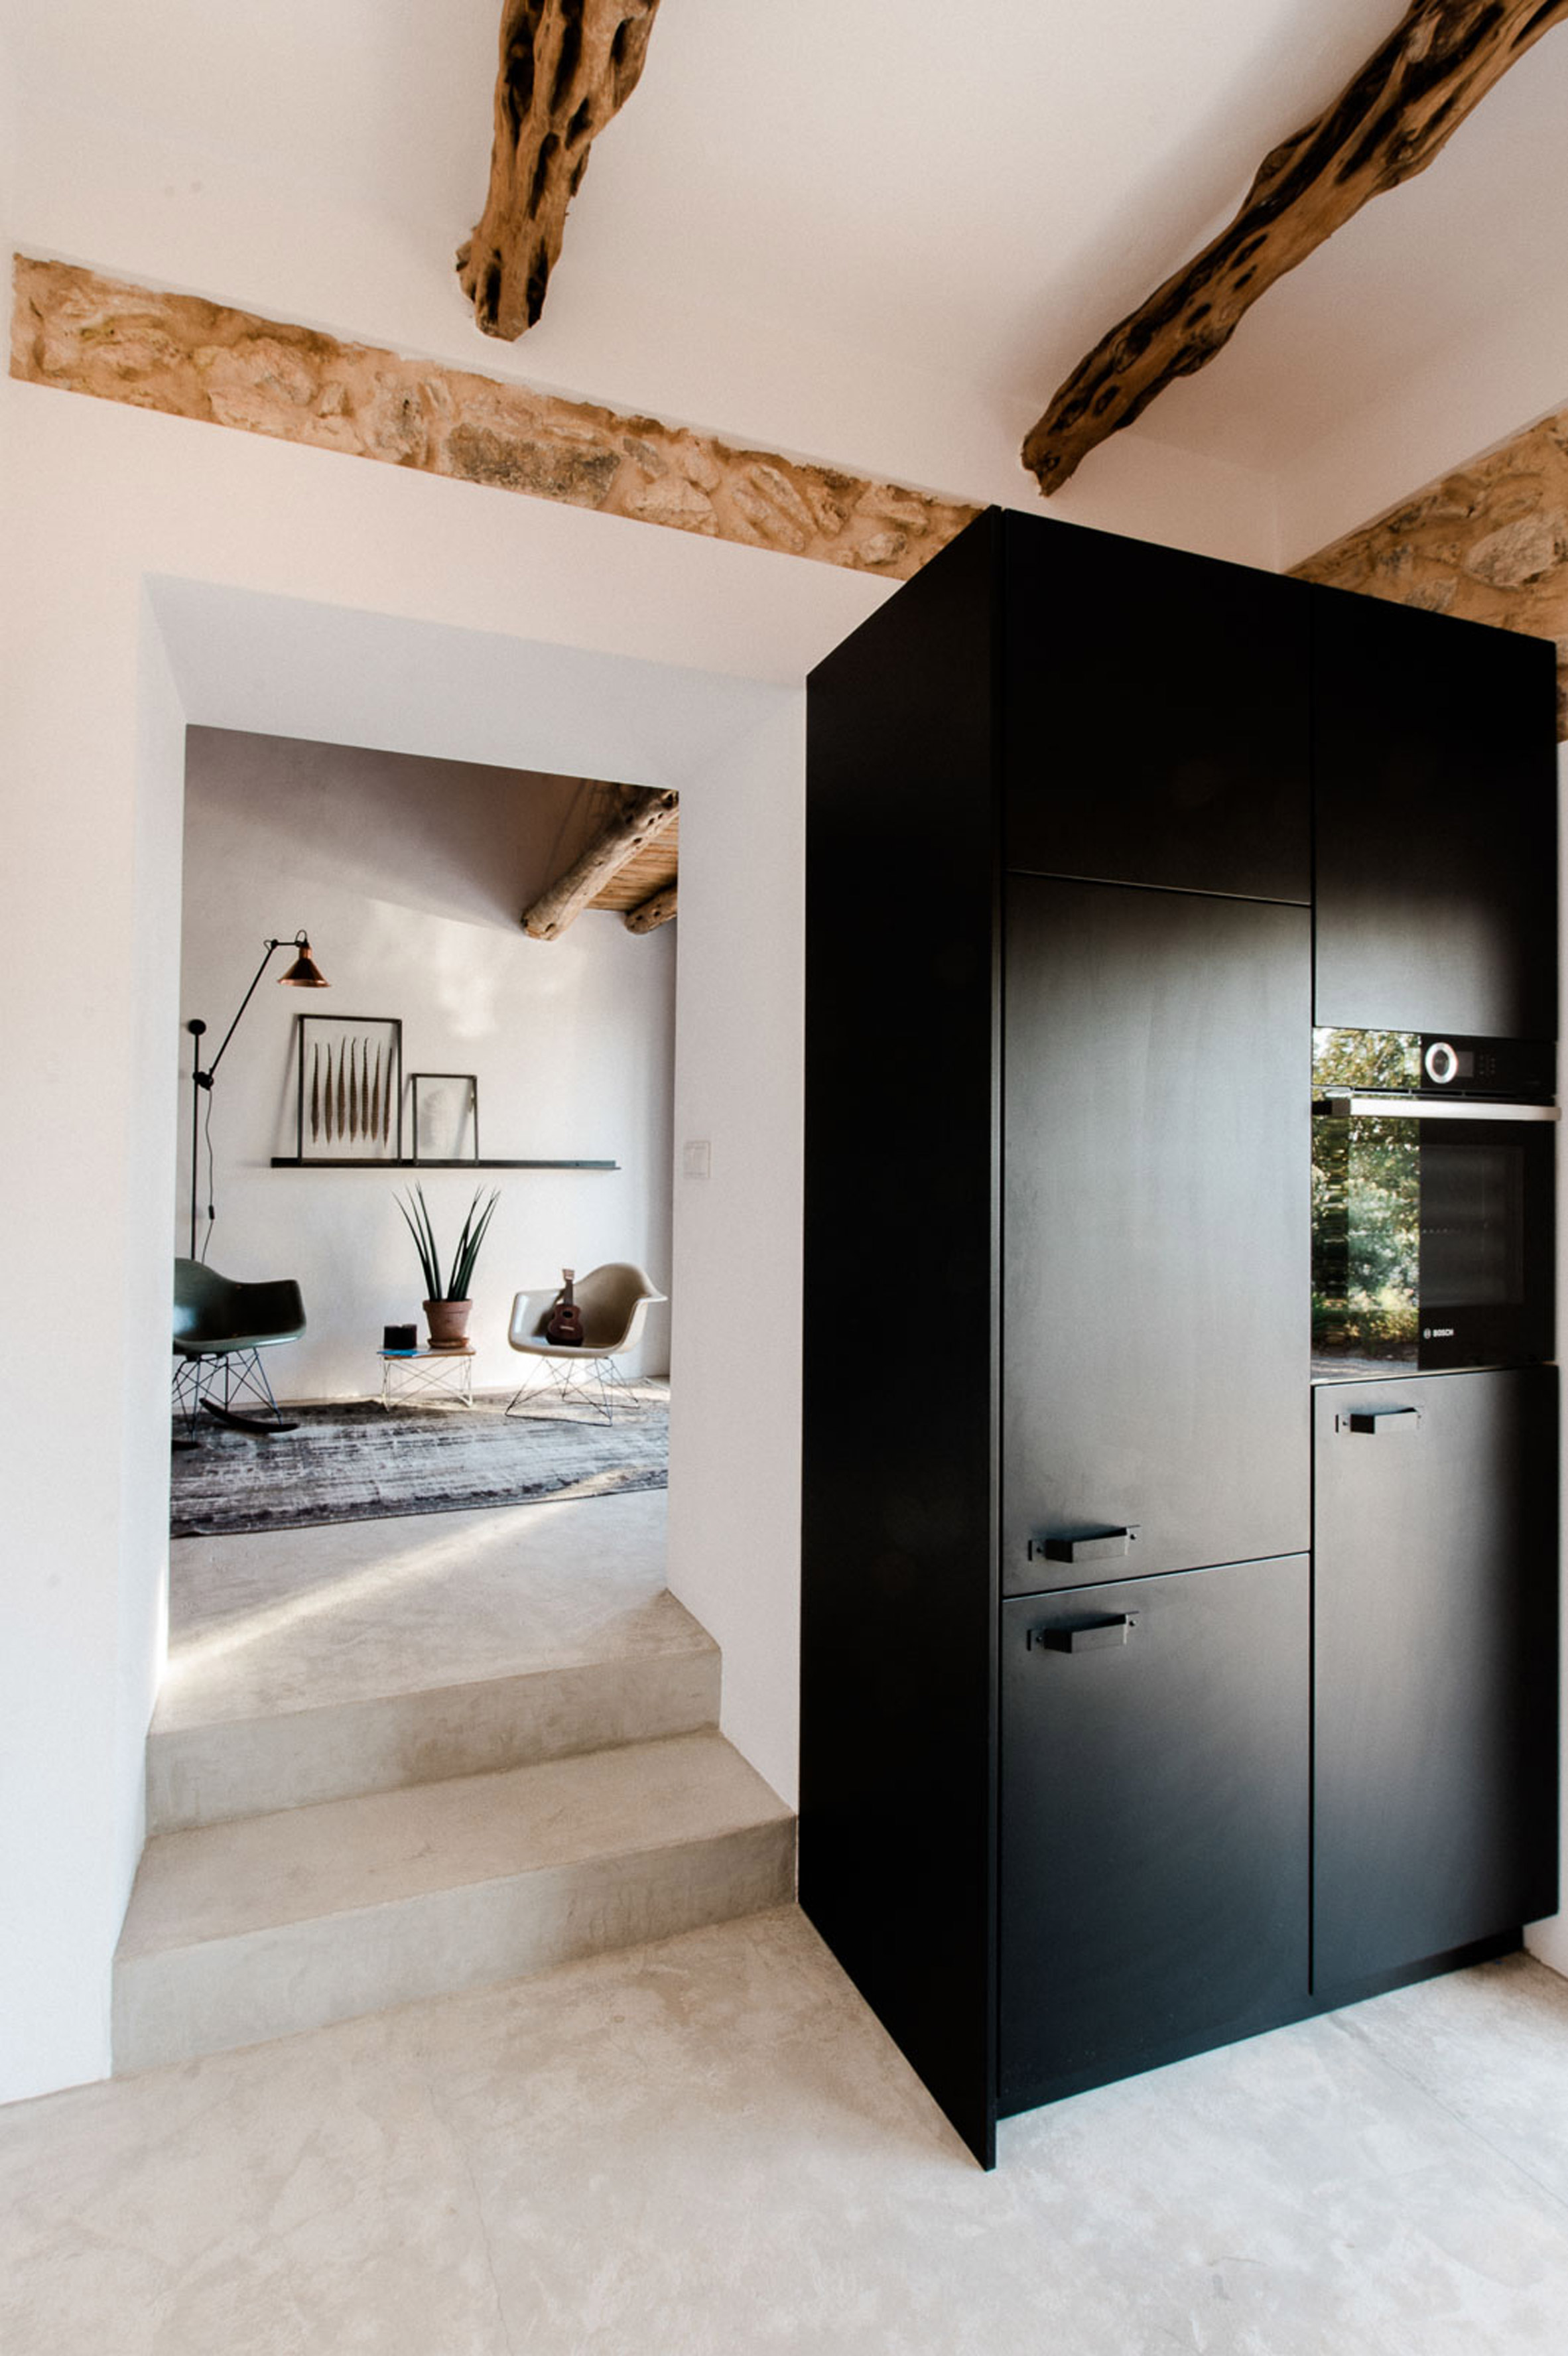 7. Transformation from stable to guesthouse in Ibiza by Standard Studio - Transformation from stable to guesthouse in Ibiza by Standard Studio